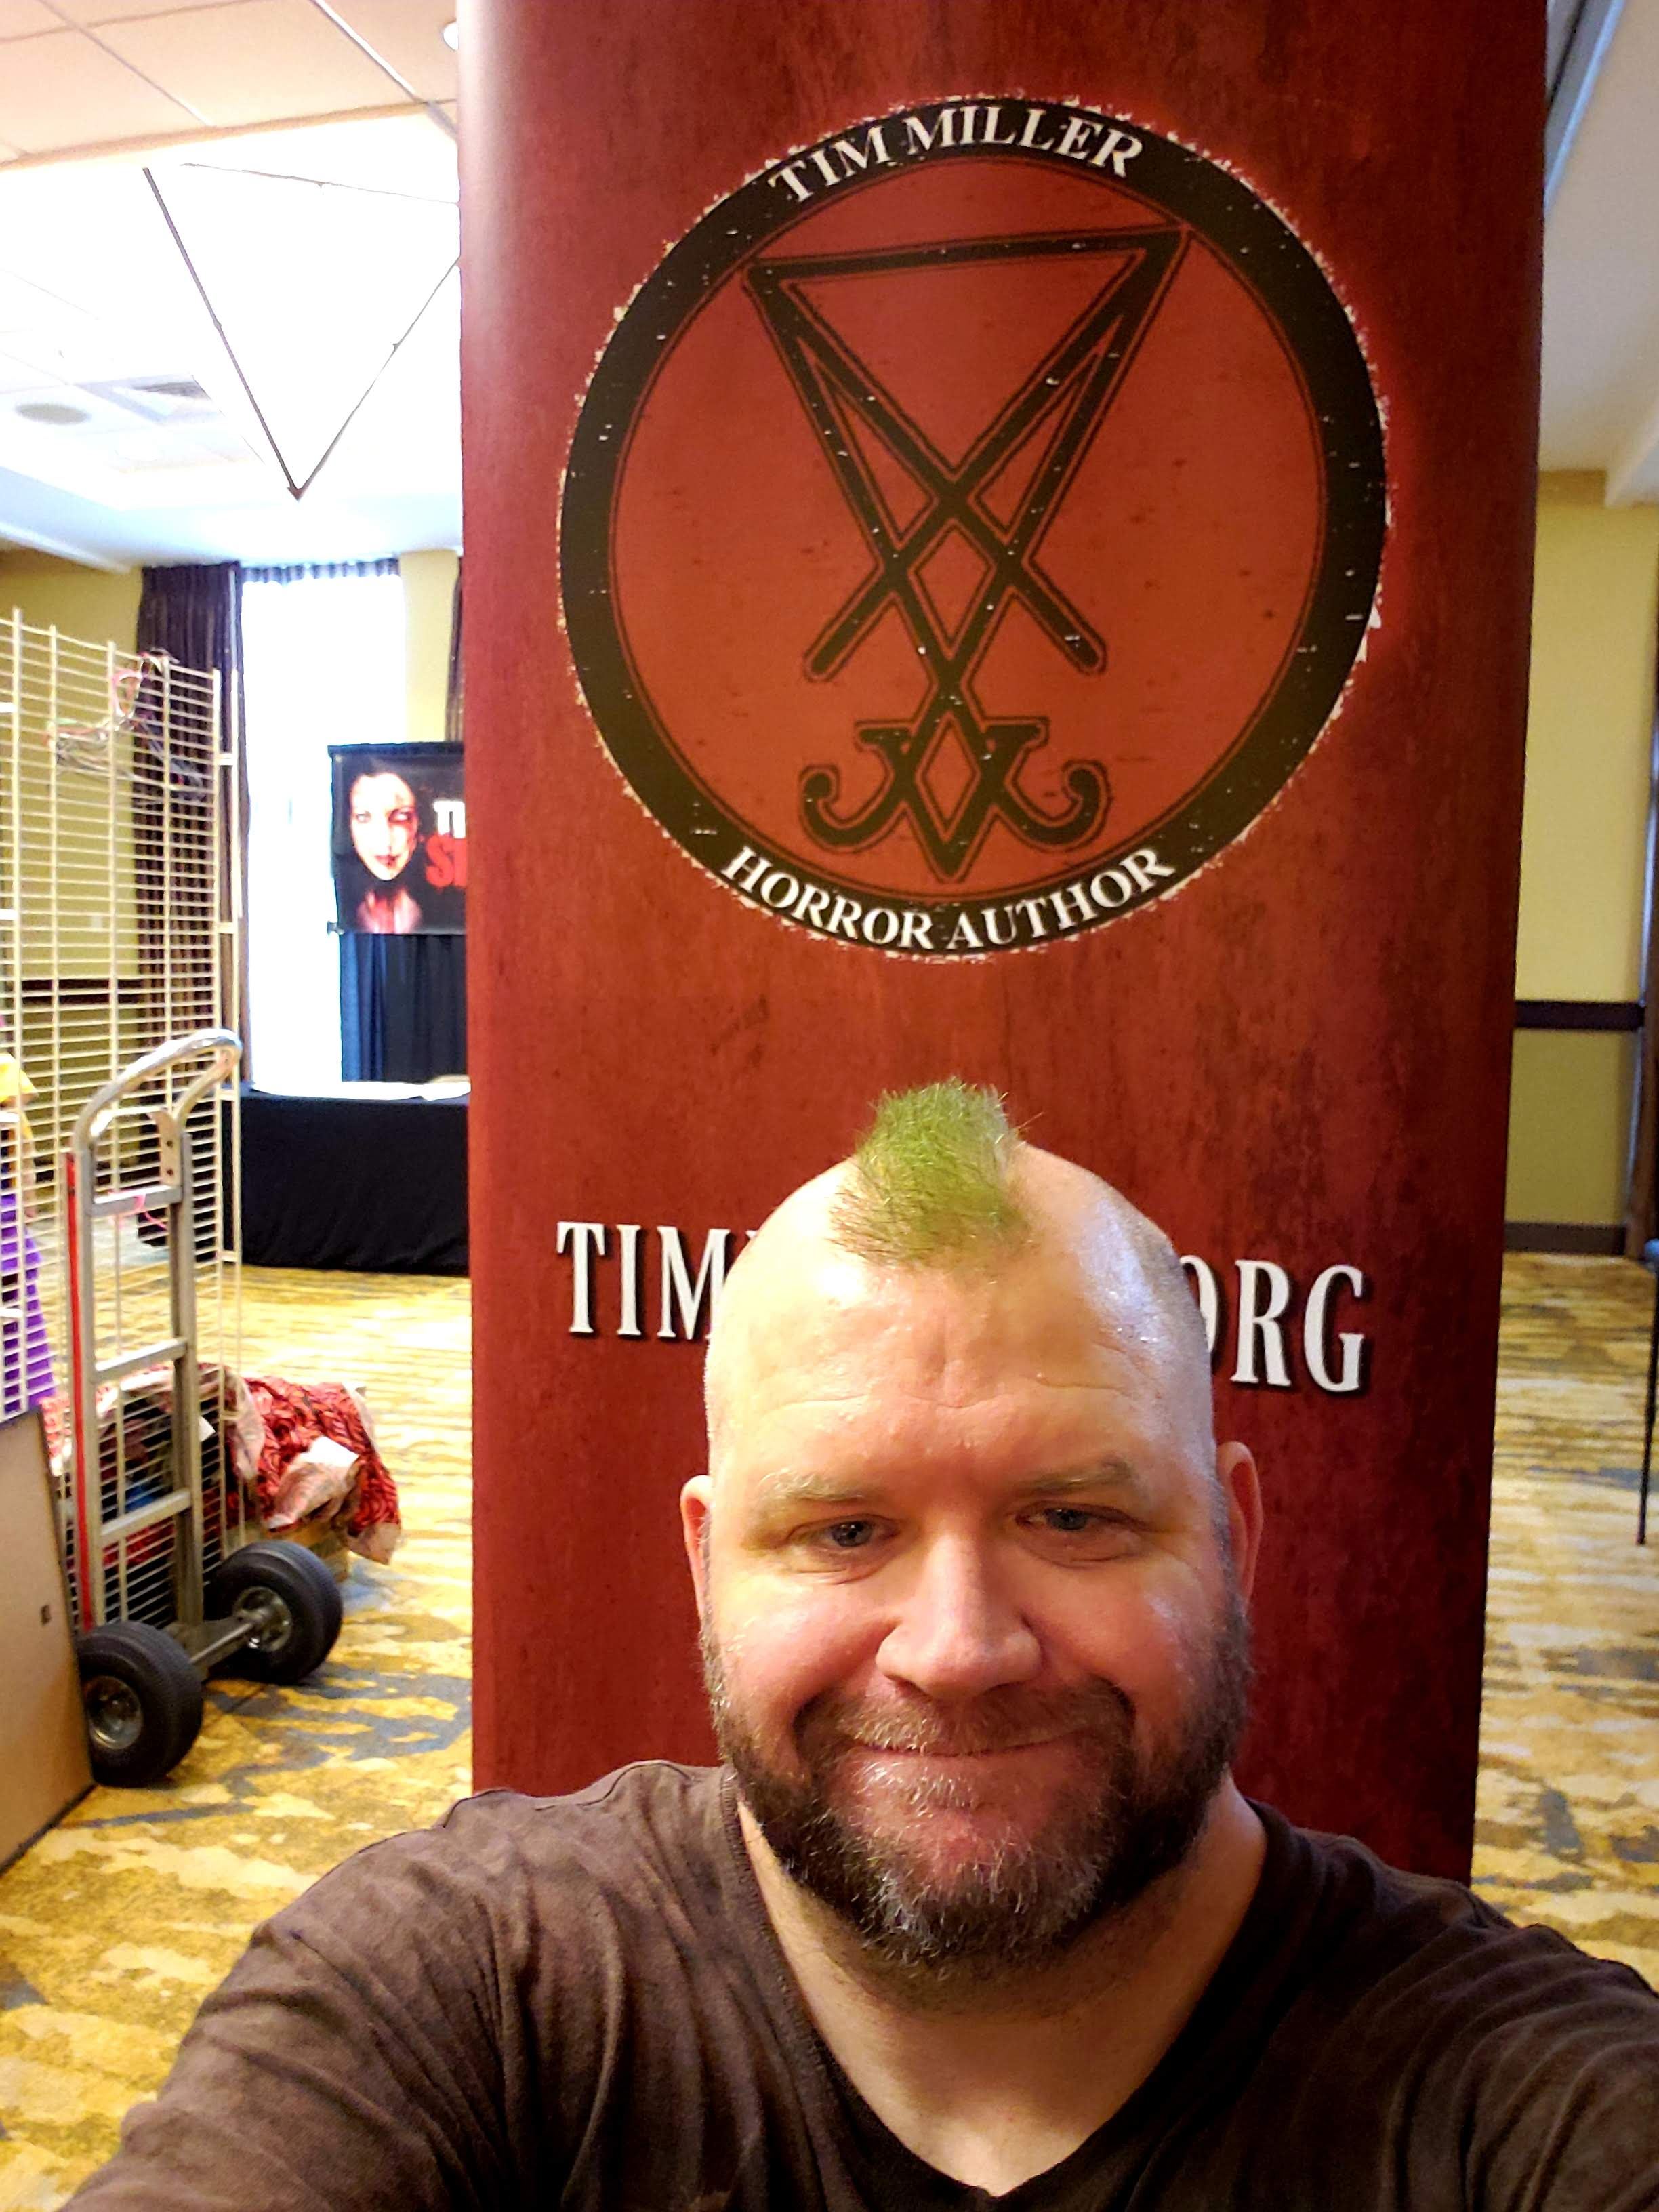 Independent horror author, Tim Miller.